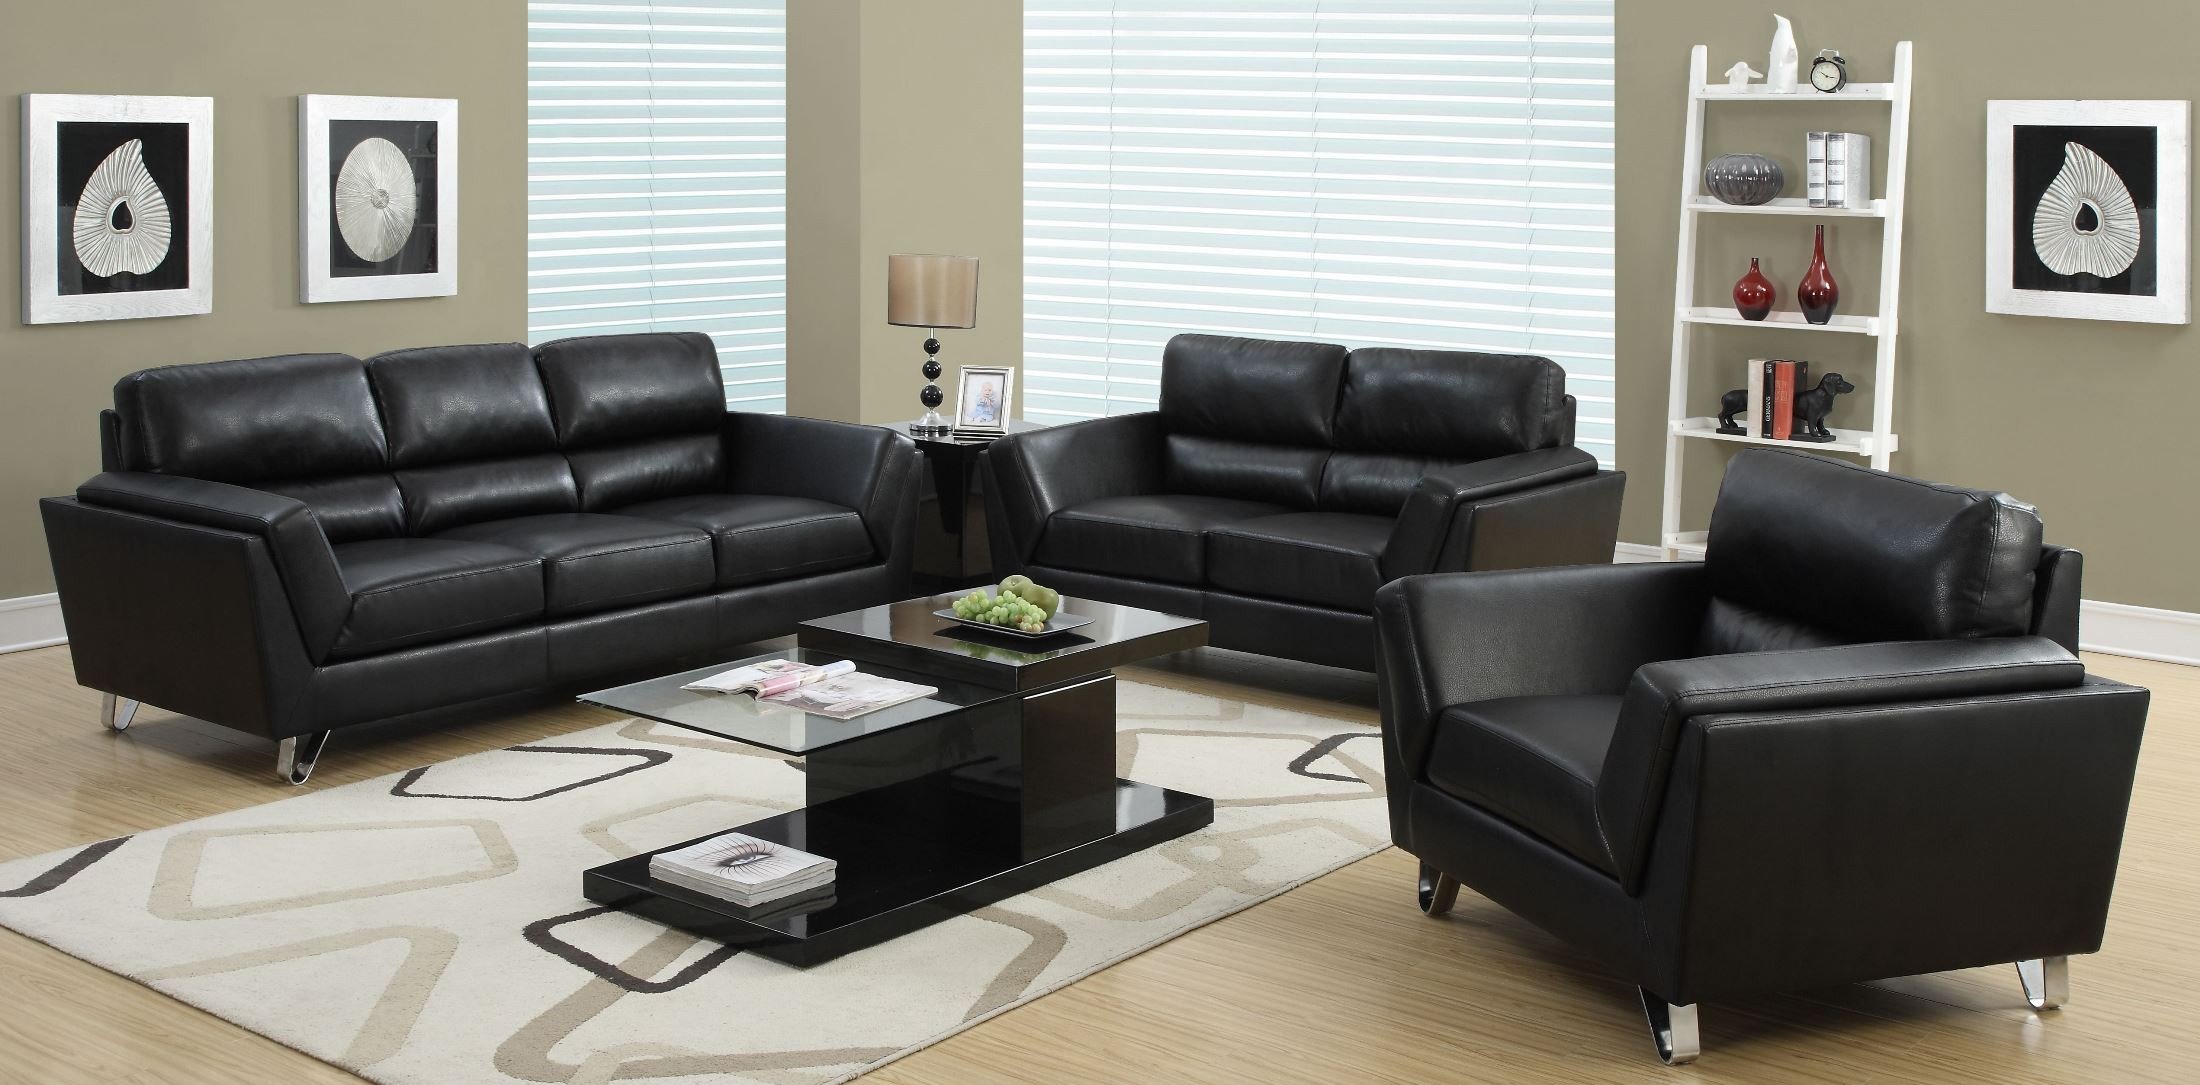 black bonded leather match living room set from monarch 8203bk coleman furniture. Black Bedroom Furniture Sets. Home Design Ideas